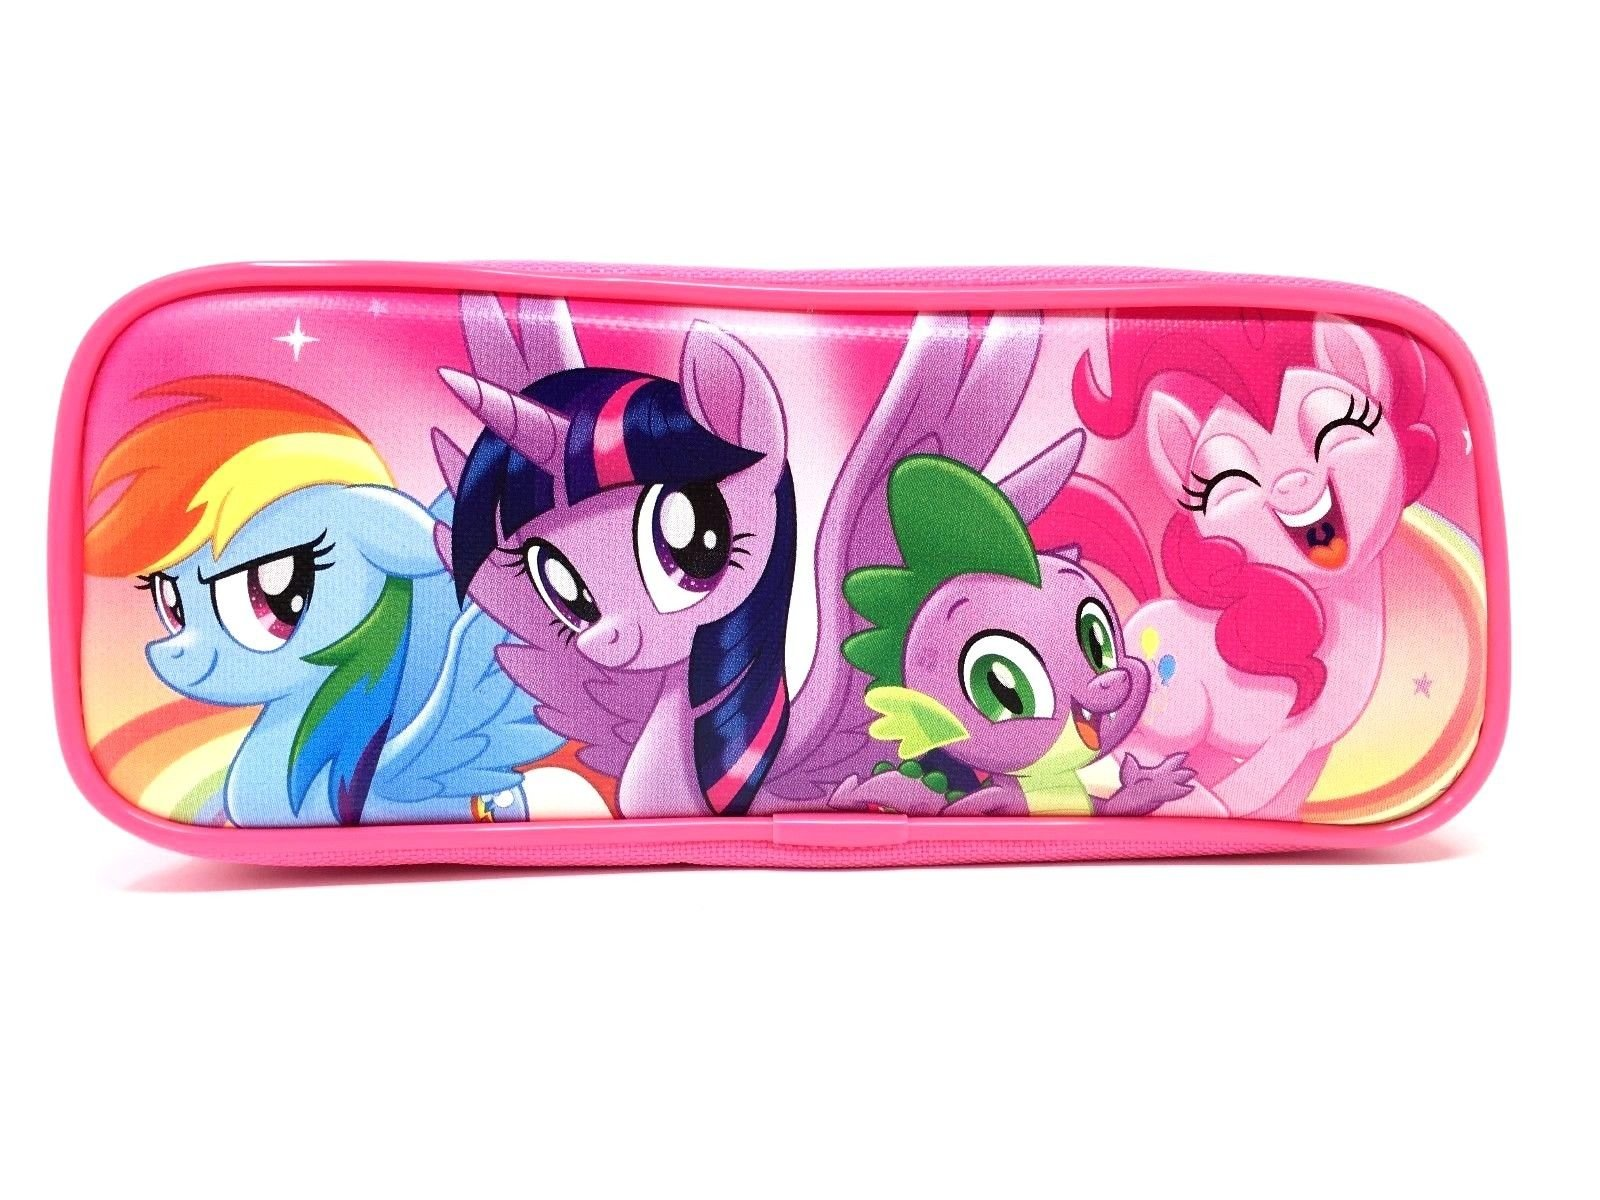 My Little Pony Wallet-Passport Bag- String Sling Tote Bag Backpack (PINK PENCIL CASE) by Party Favors My Little Pony (Image #1)